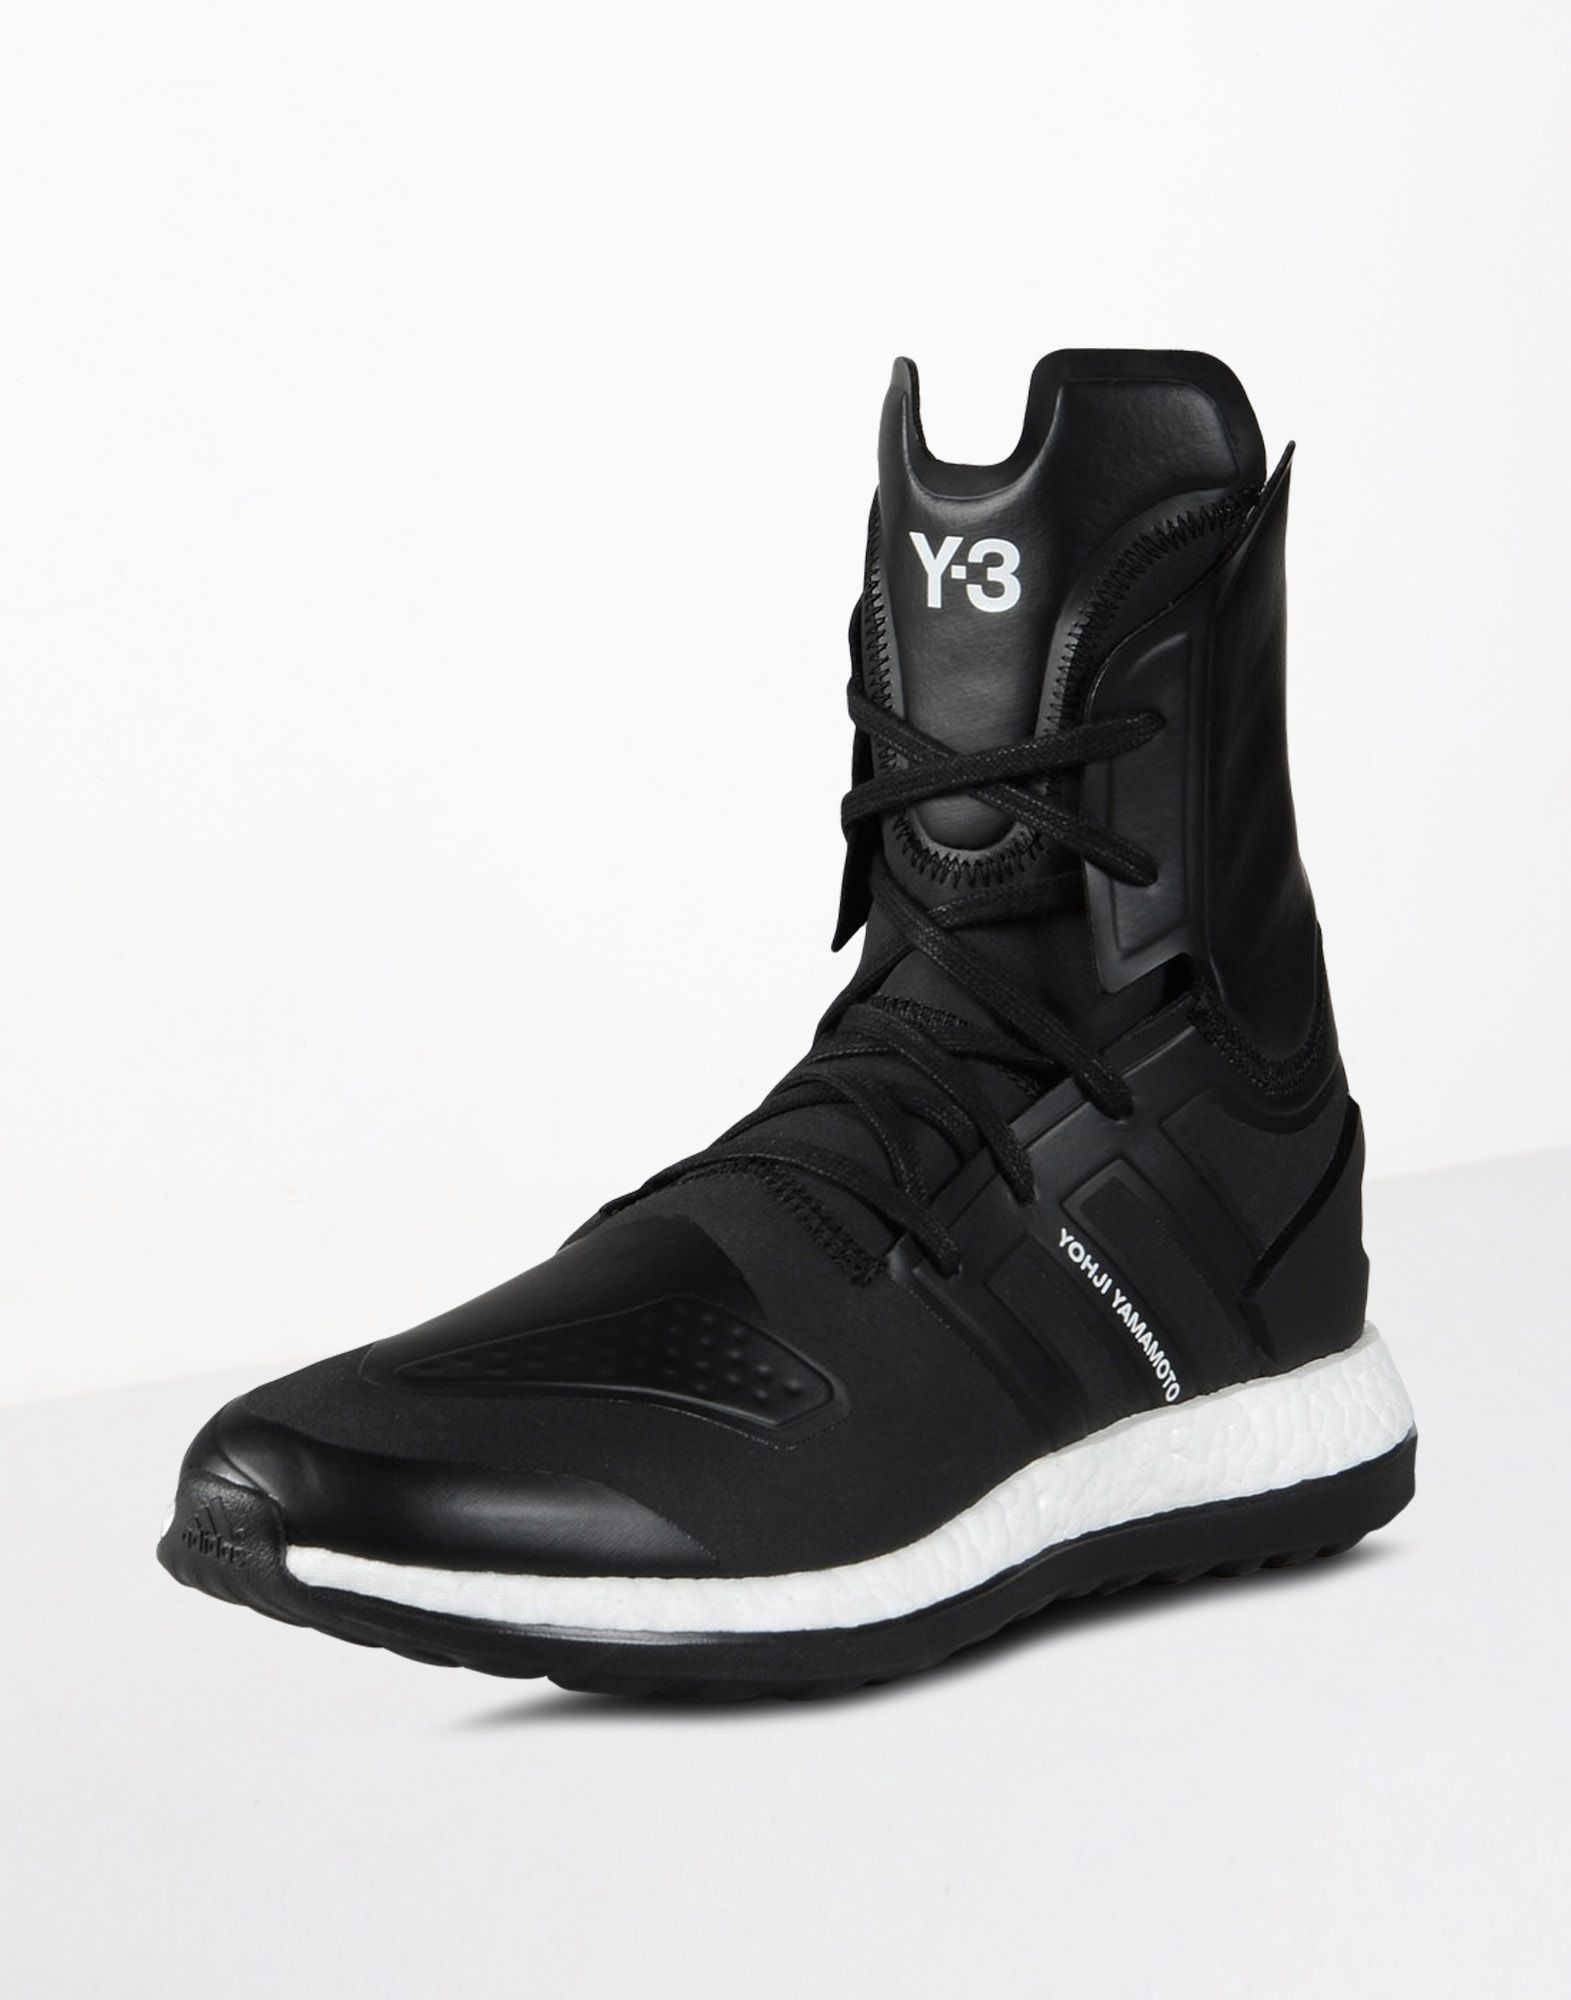 678088829852d Y-3 PUREBOOST ZG HIGH SHOES man Y-3 adidas